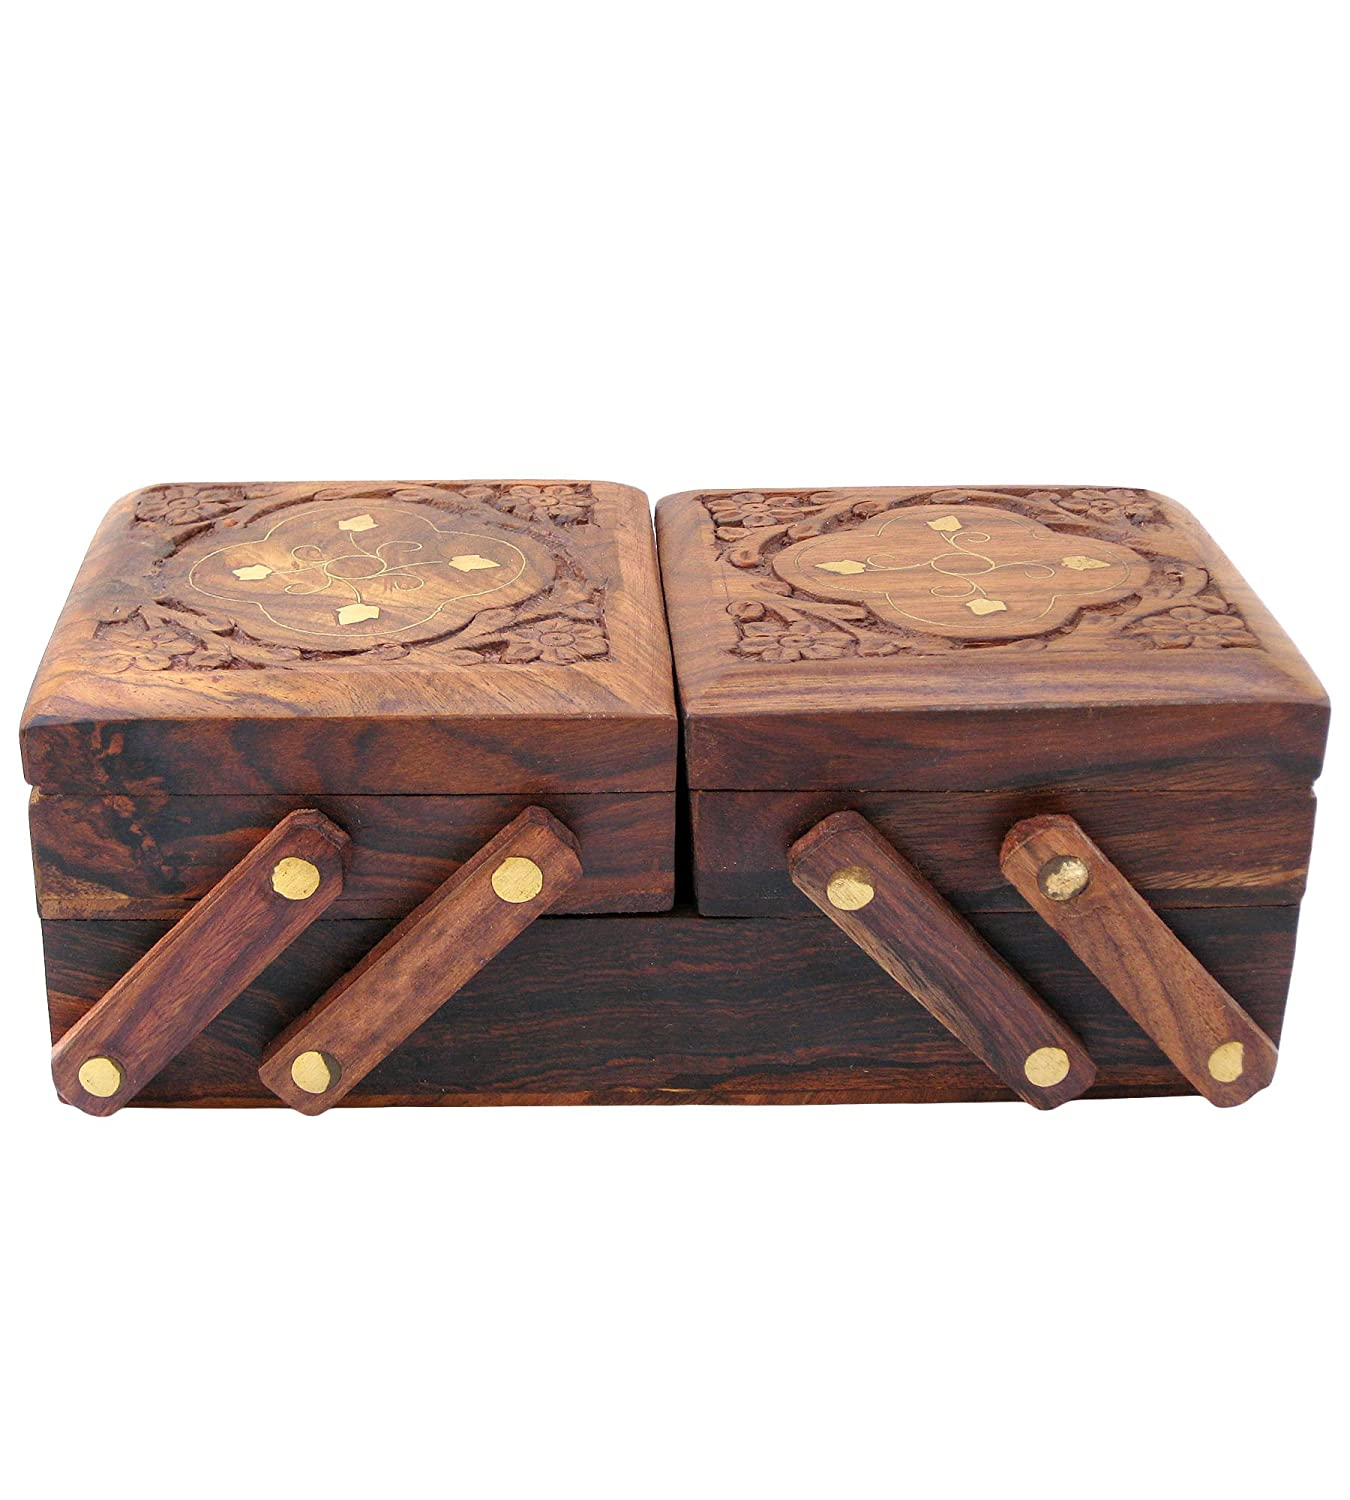 ITOS365 Jewellery Box for Women Wooden Flip Flap Handmade Gift 8